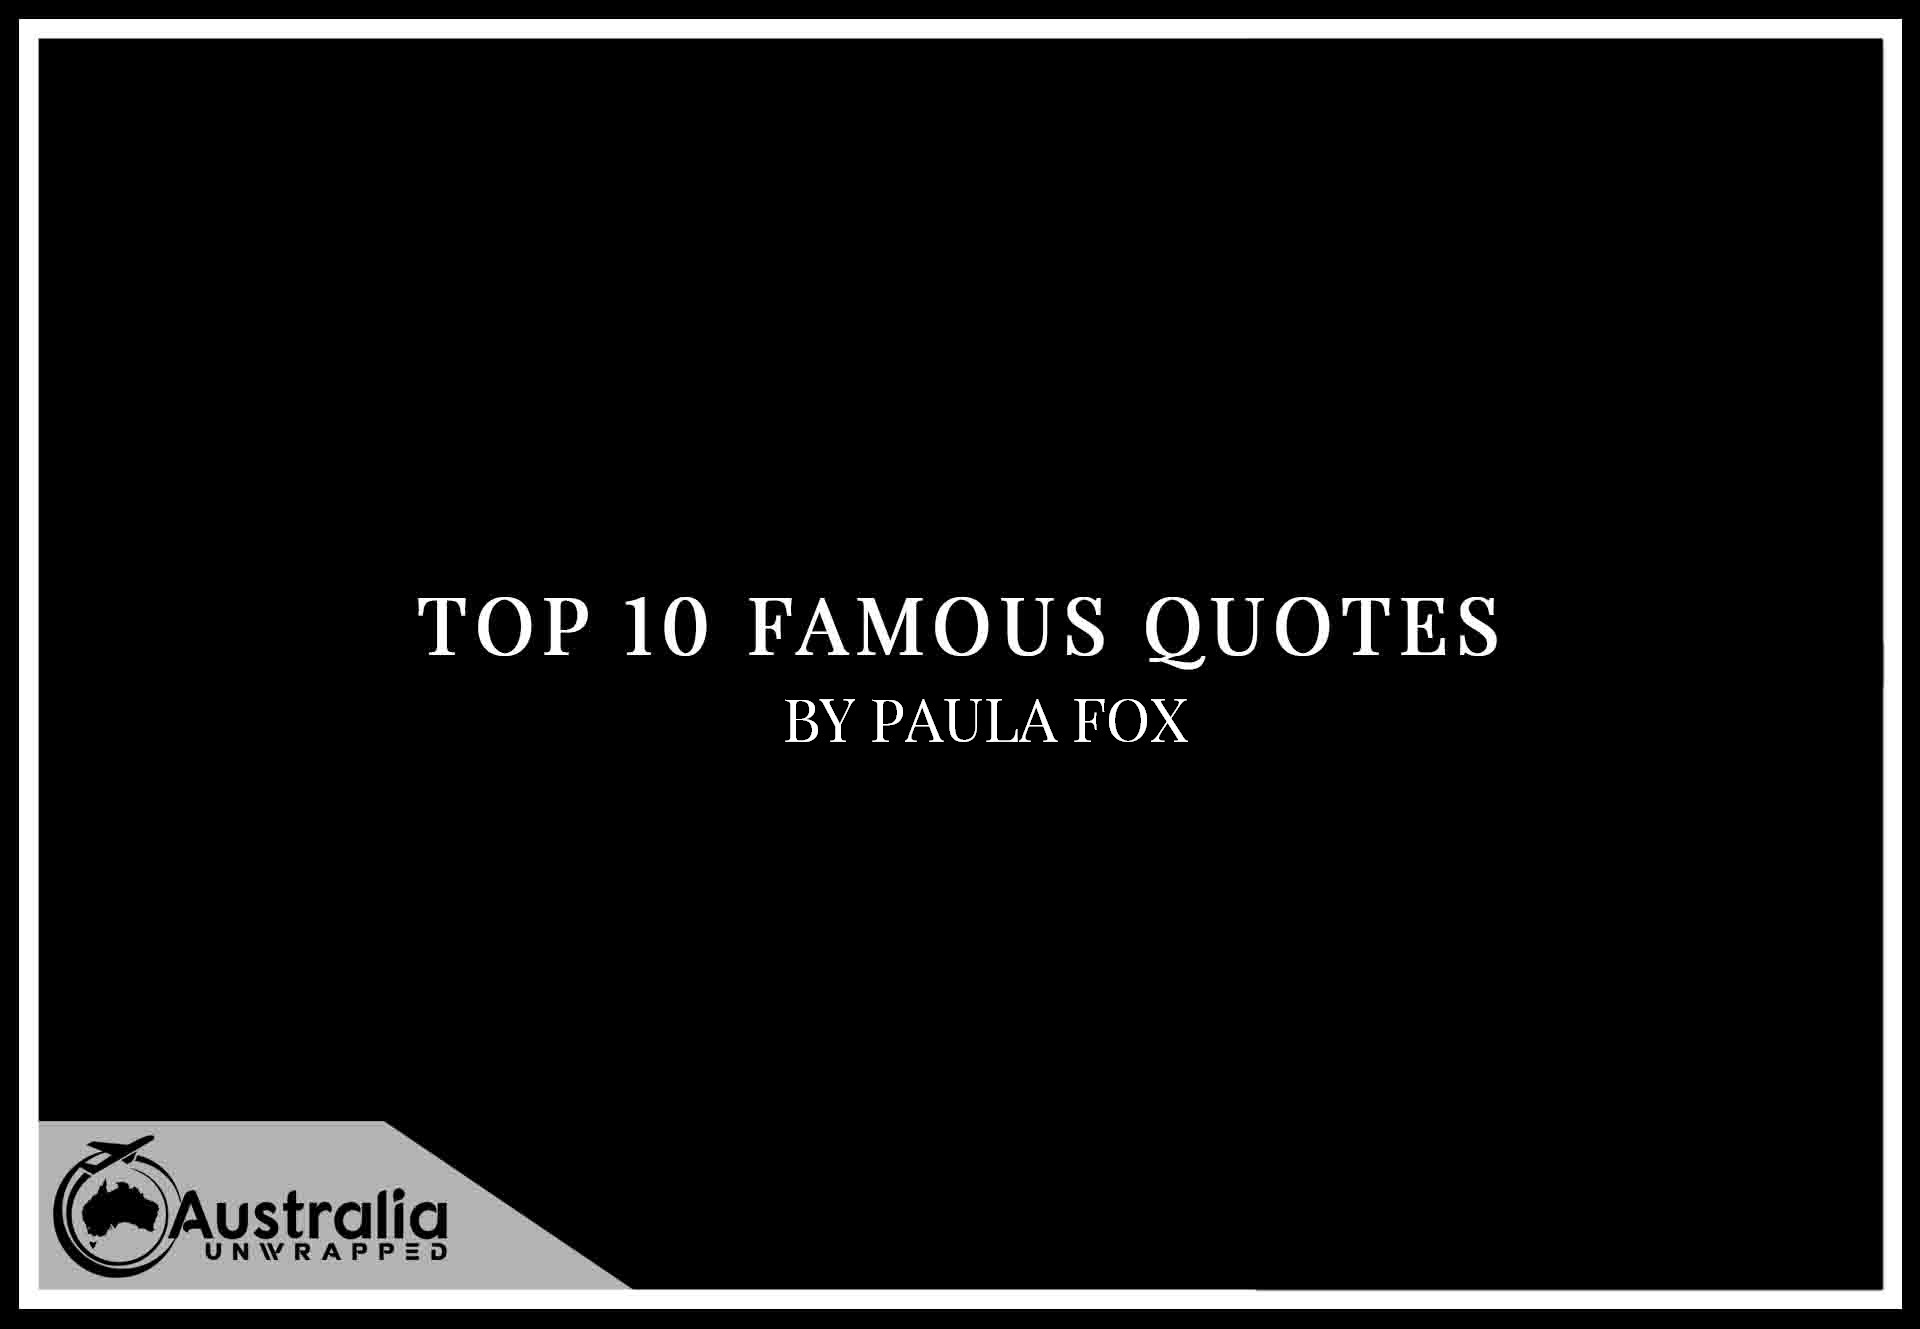 Top 10 Famous Quotes by Author Paula Fox